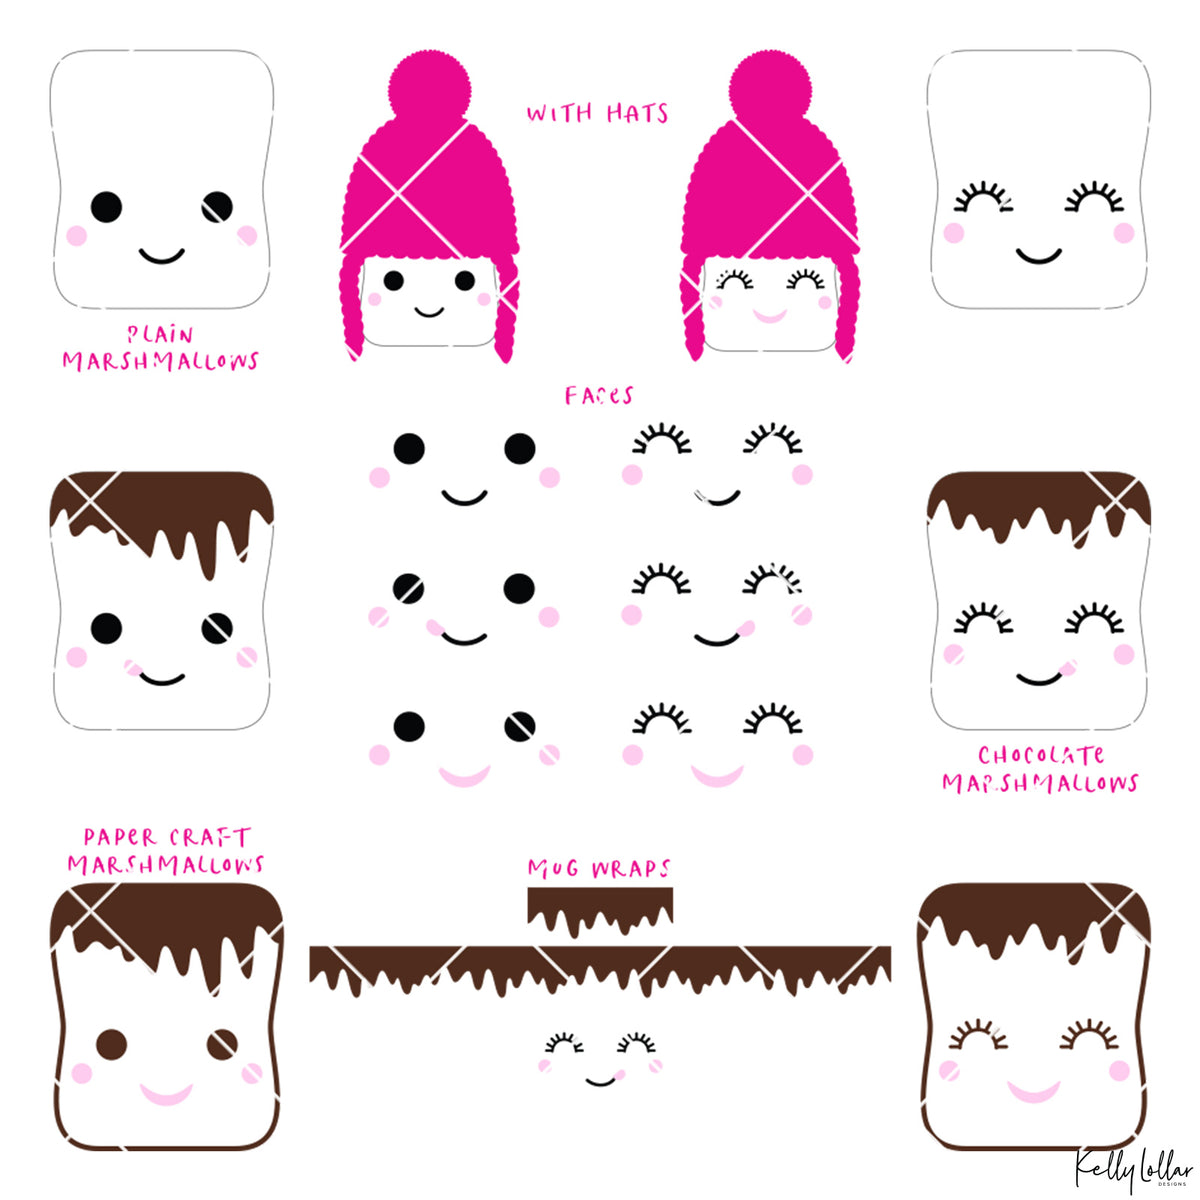 Marshmallow Faces Pack | SVG DXF EPS PNG Cut Files